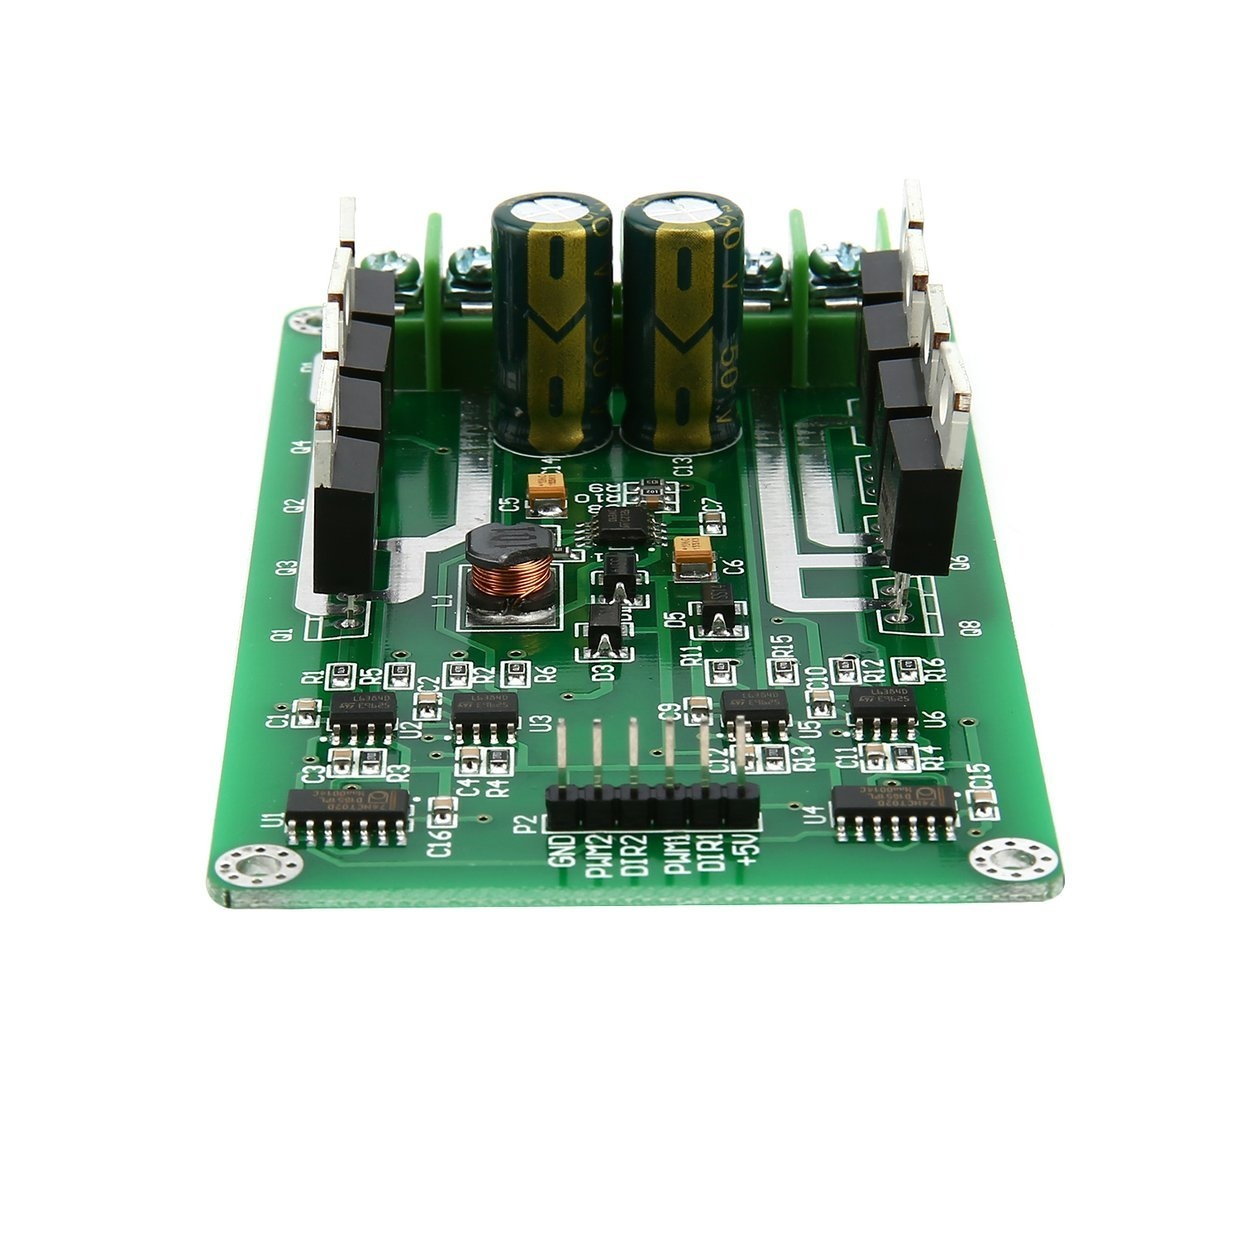 Buy Generic 3v 36v Dual Motor Driver Board Module H Bridge Dc Mosfet The N Type Irf3205s Can Be Replaced With Different Types Of Image